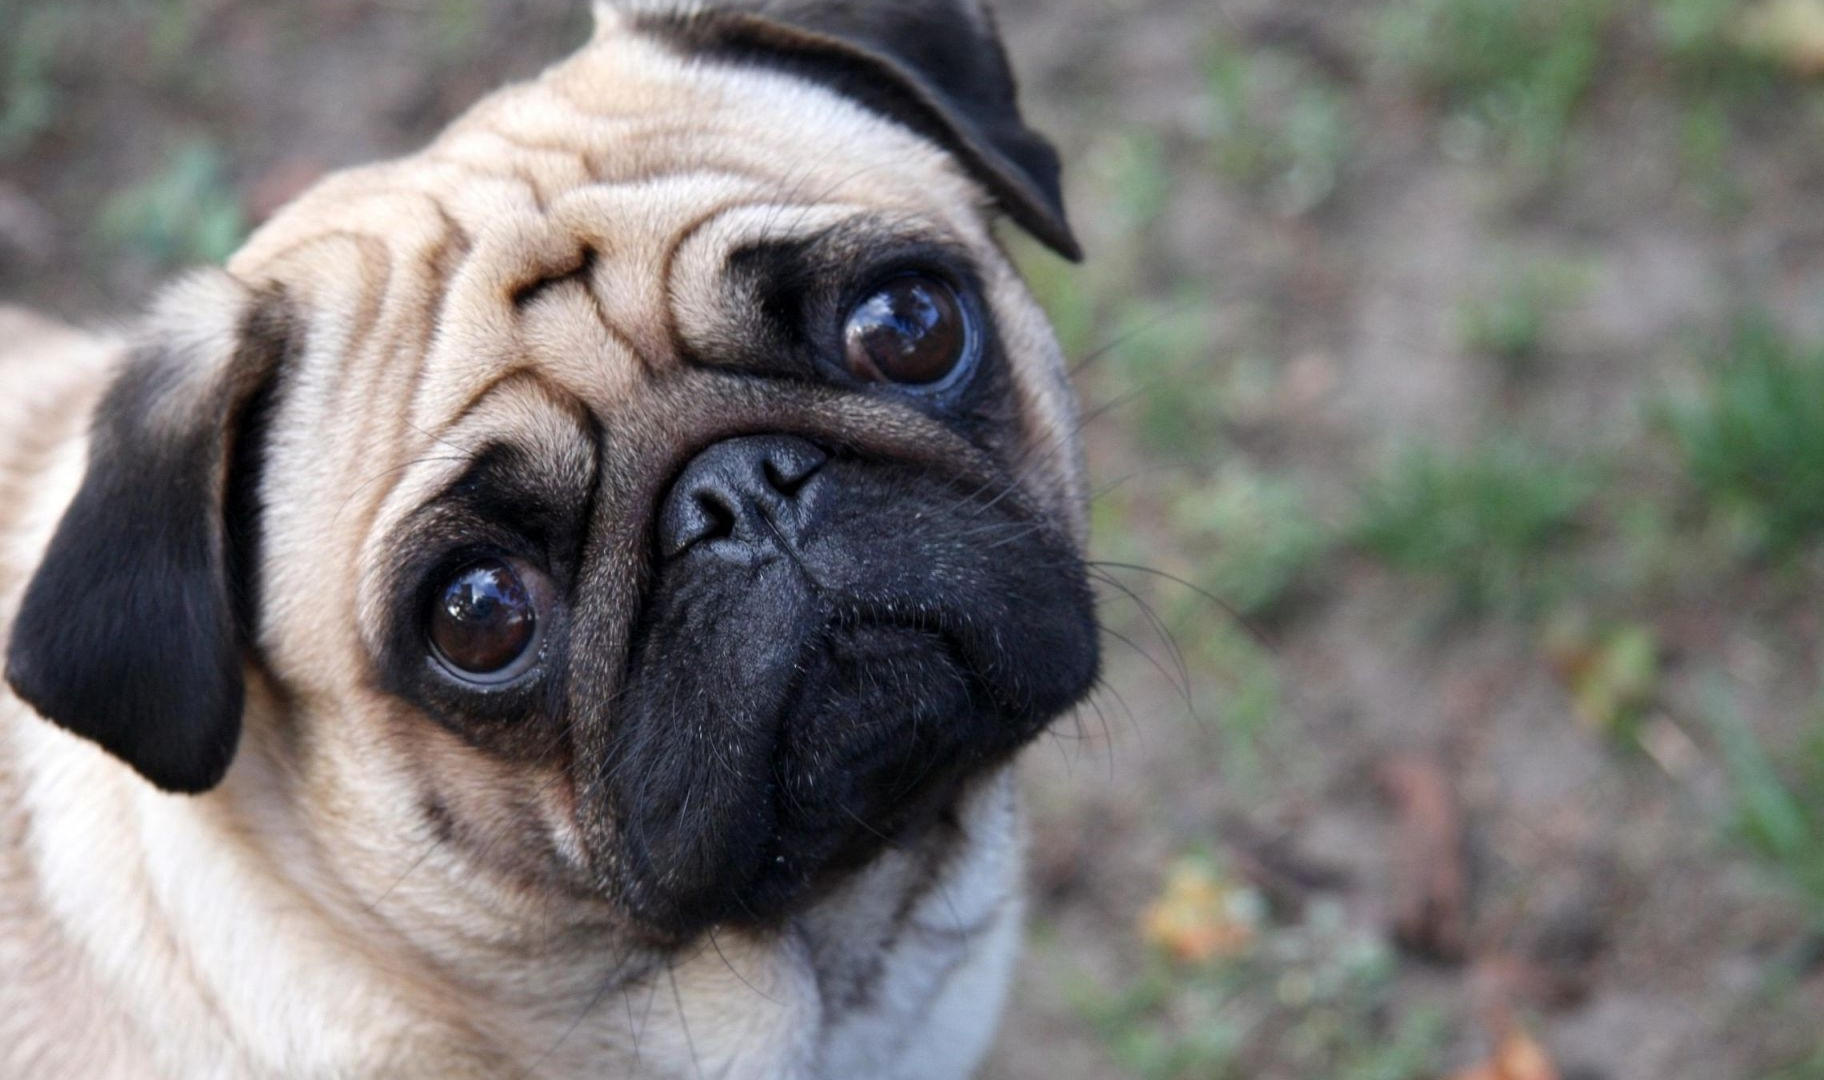 fav 0 rate 0 tweet 1920x1200 animals dog pug resolution 1920x1200 date ...